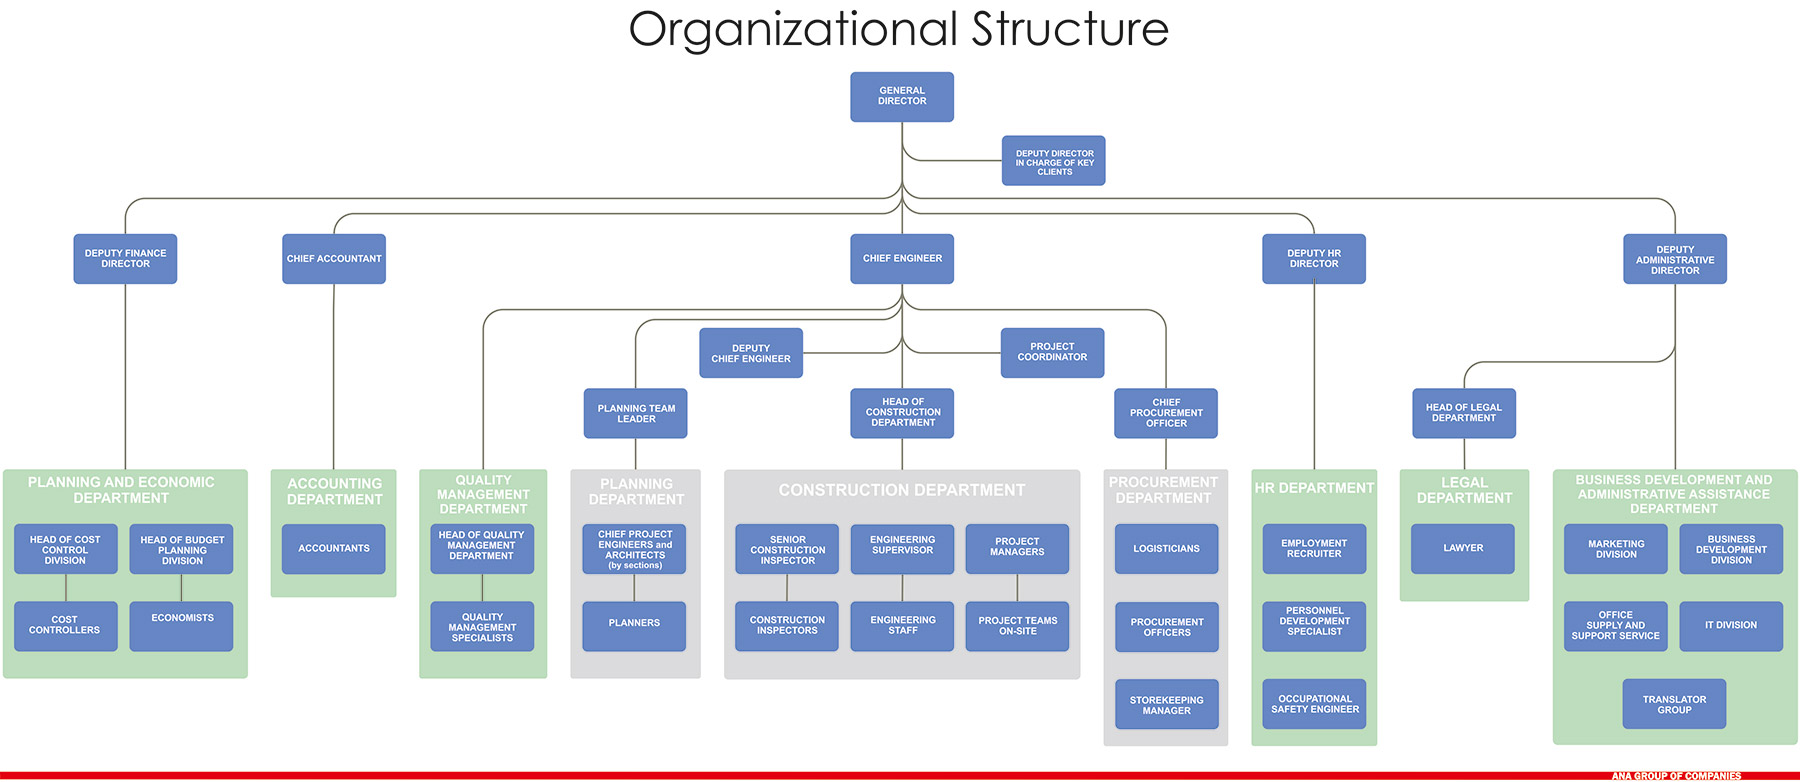 organizational structures Organizational structure refers to the way that an organization arranges people and jobs so that its work can be performed and its goals can be met.